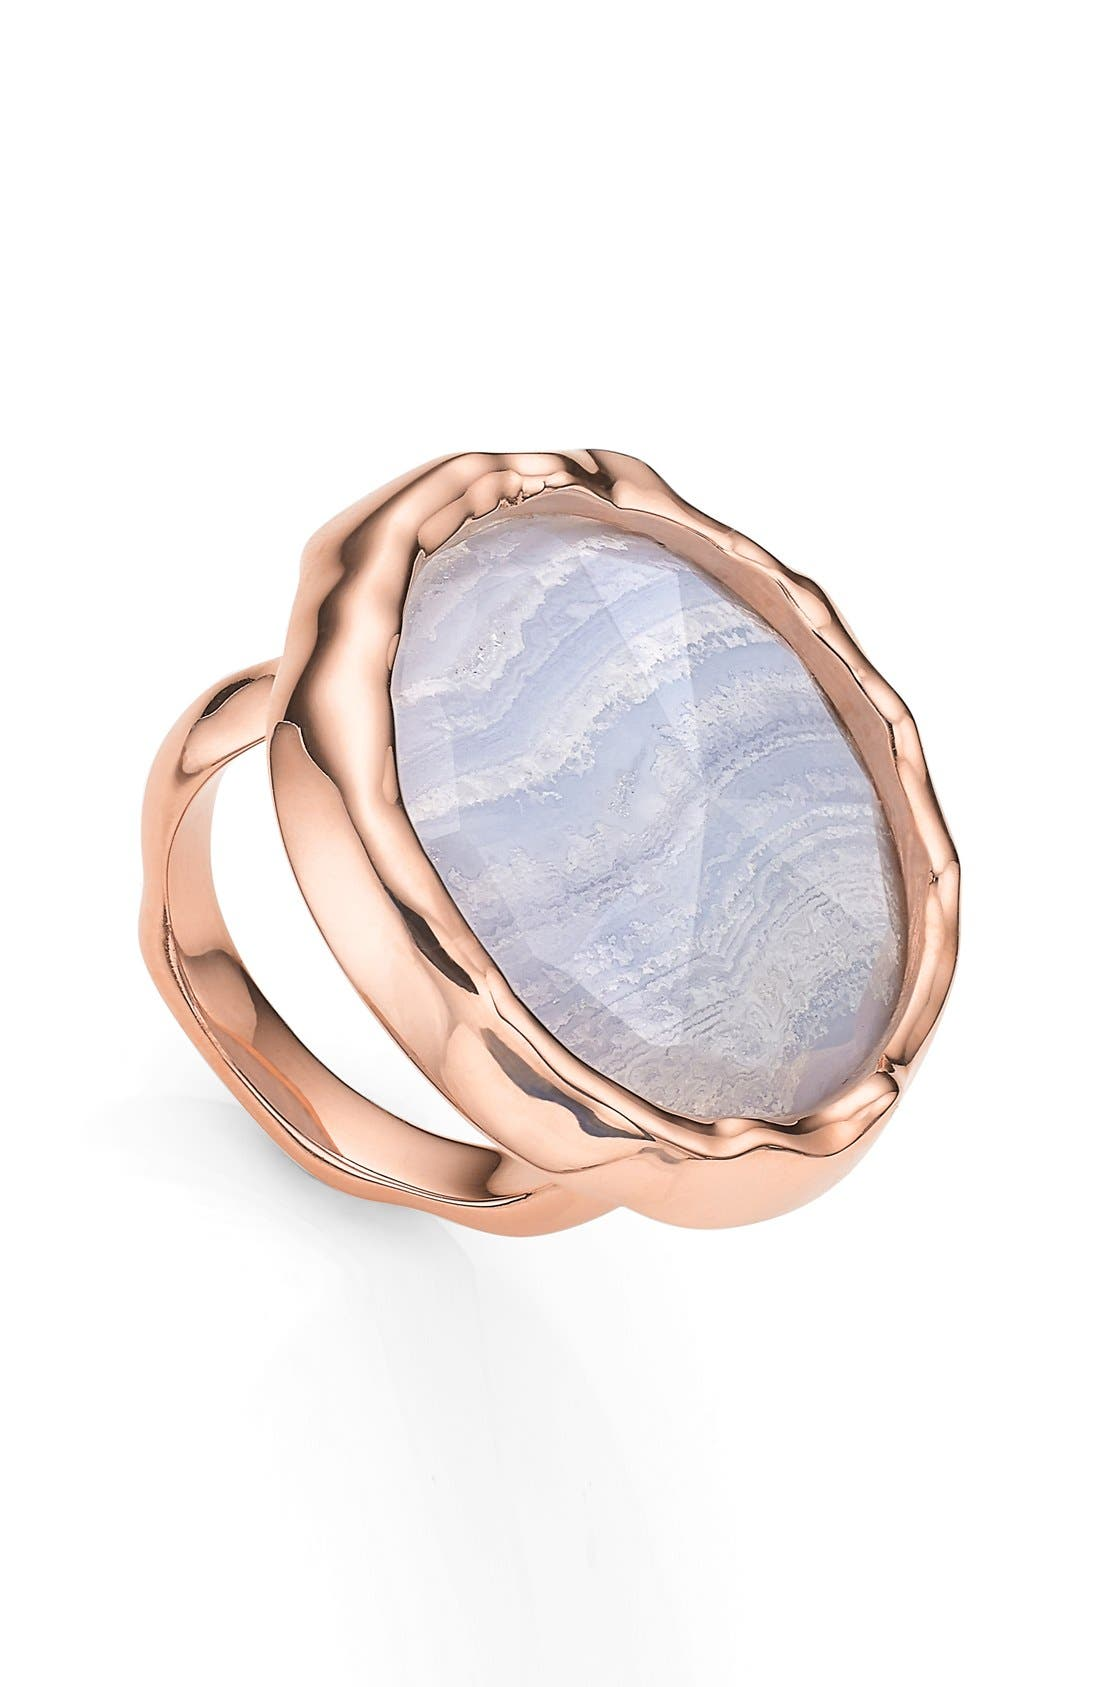 'Siren' Semiprecious Stone Ring,                             Main thumbnail 1, color,                             Blue Lace Agate/ Rose Gold